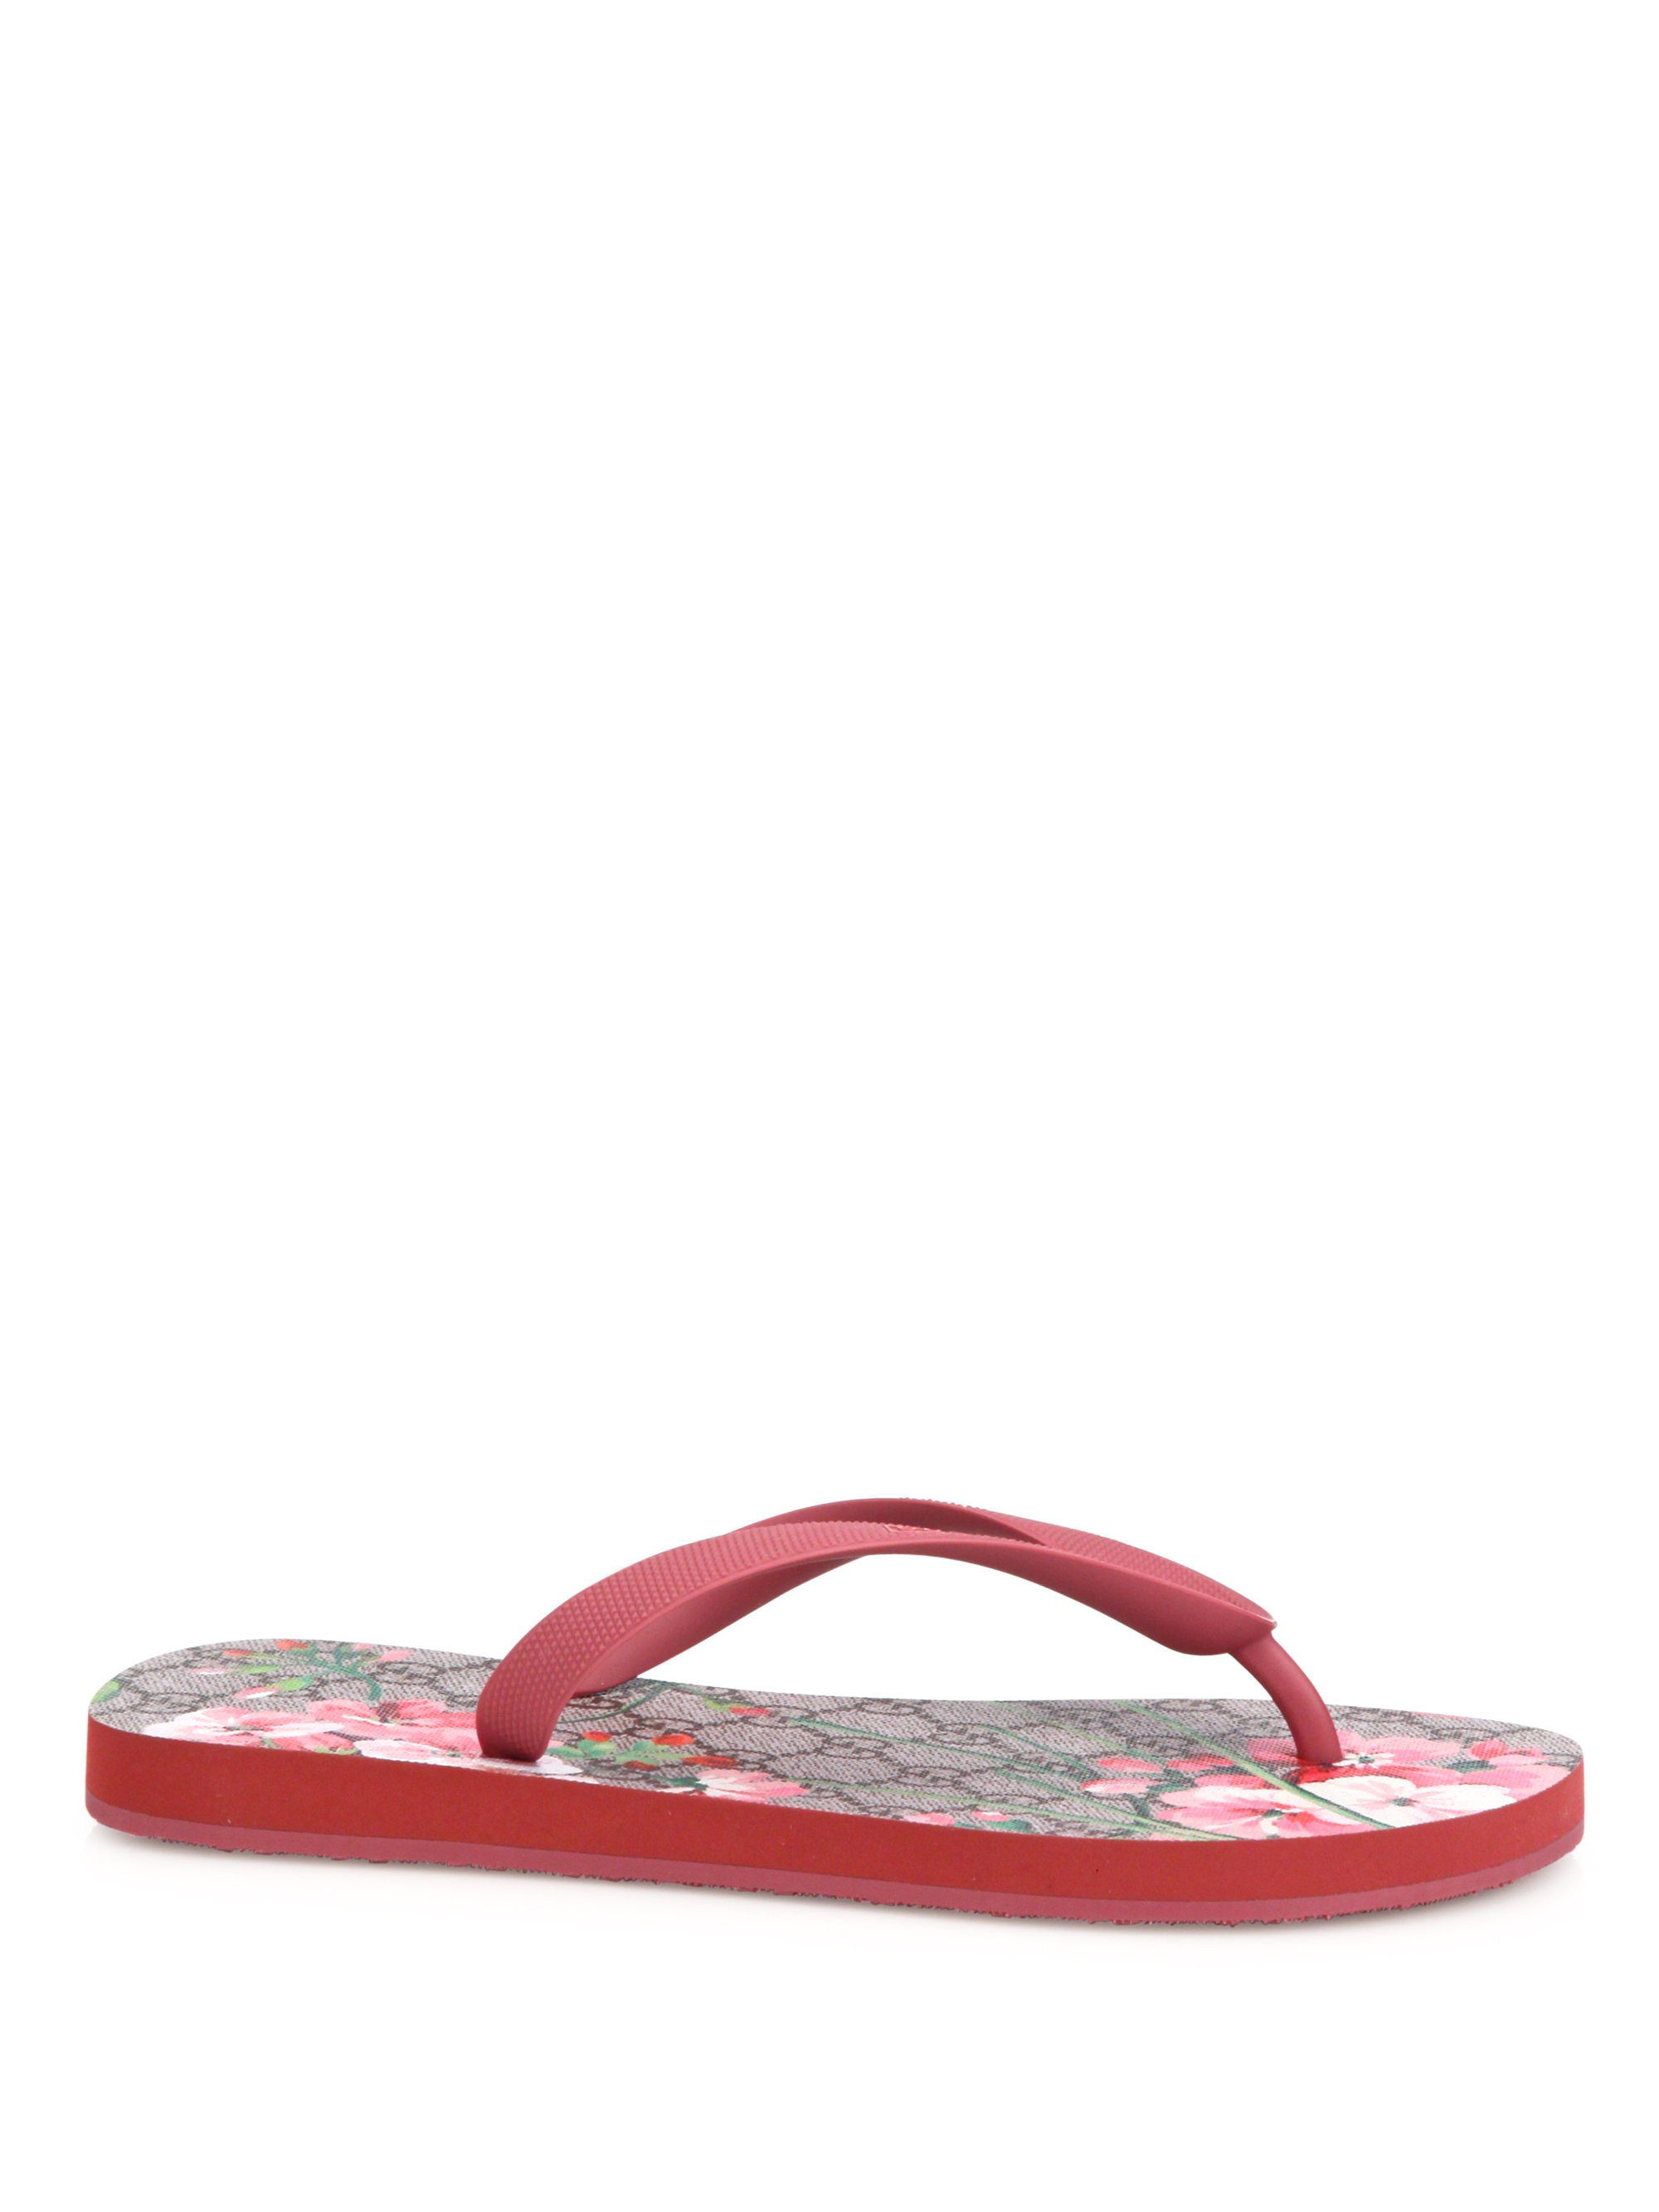 Lyst Gucci Gg Bloom Rubber Flip Flops In Pink